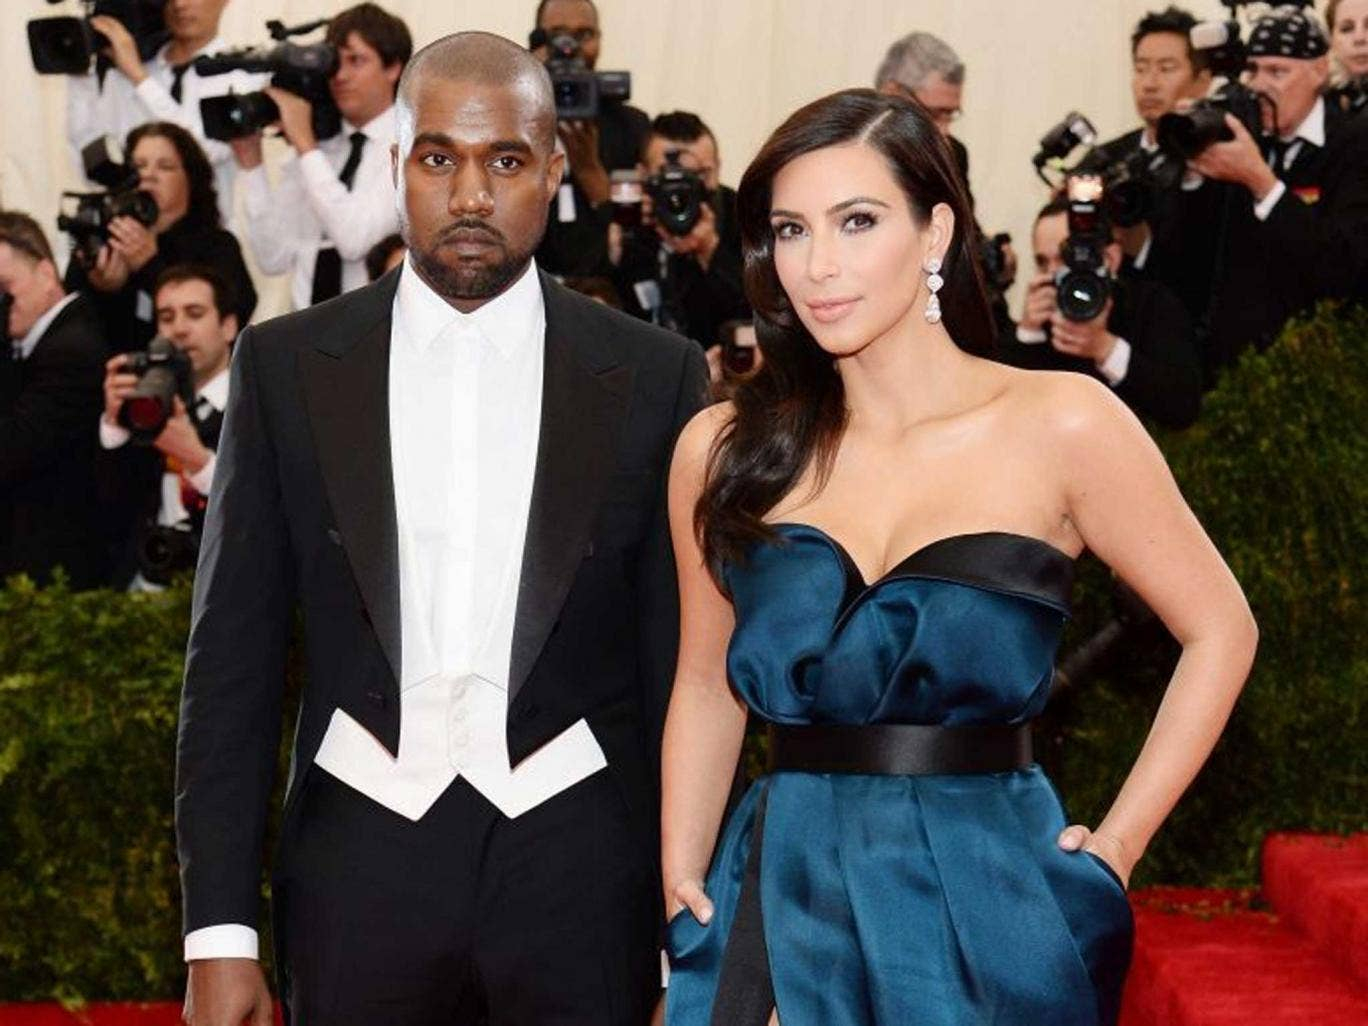 Kim Kardashian and Kanye West at the Met Ball this year